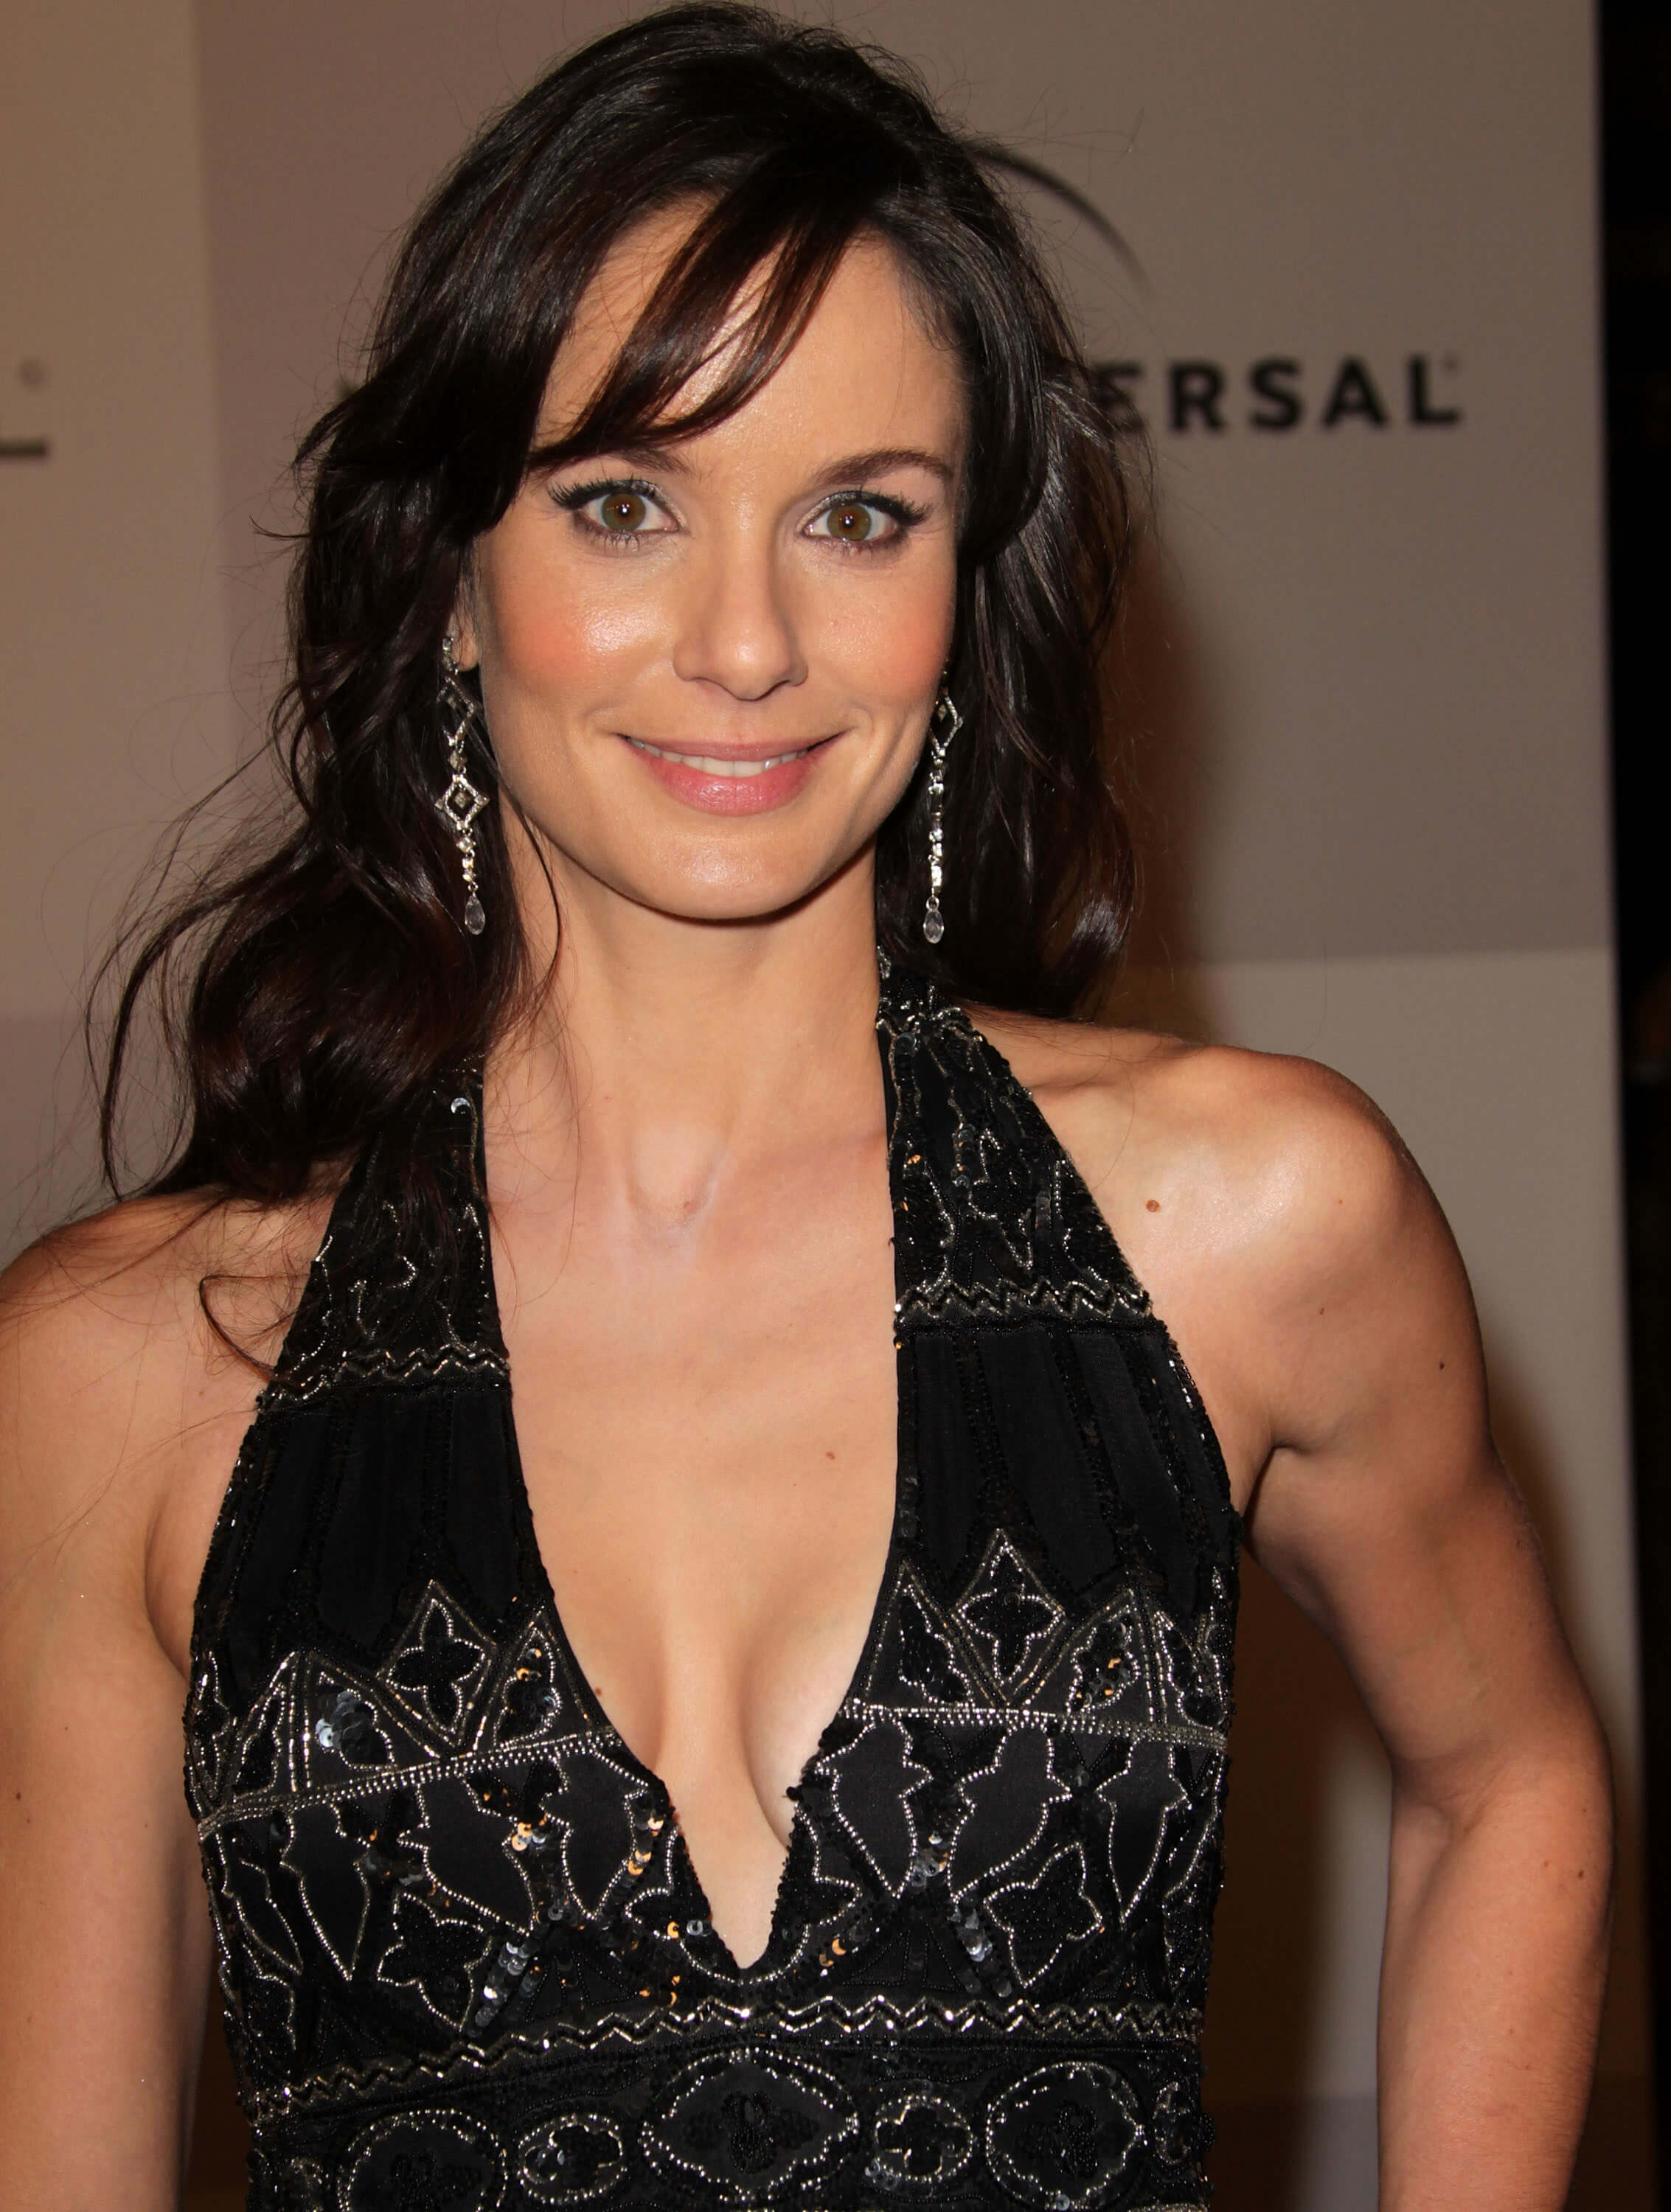 sarah wayne callies cleavage pics